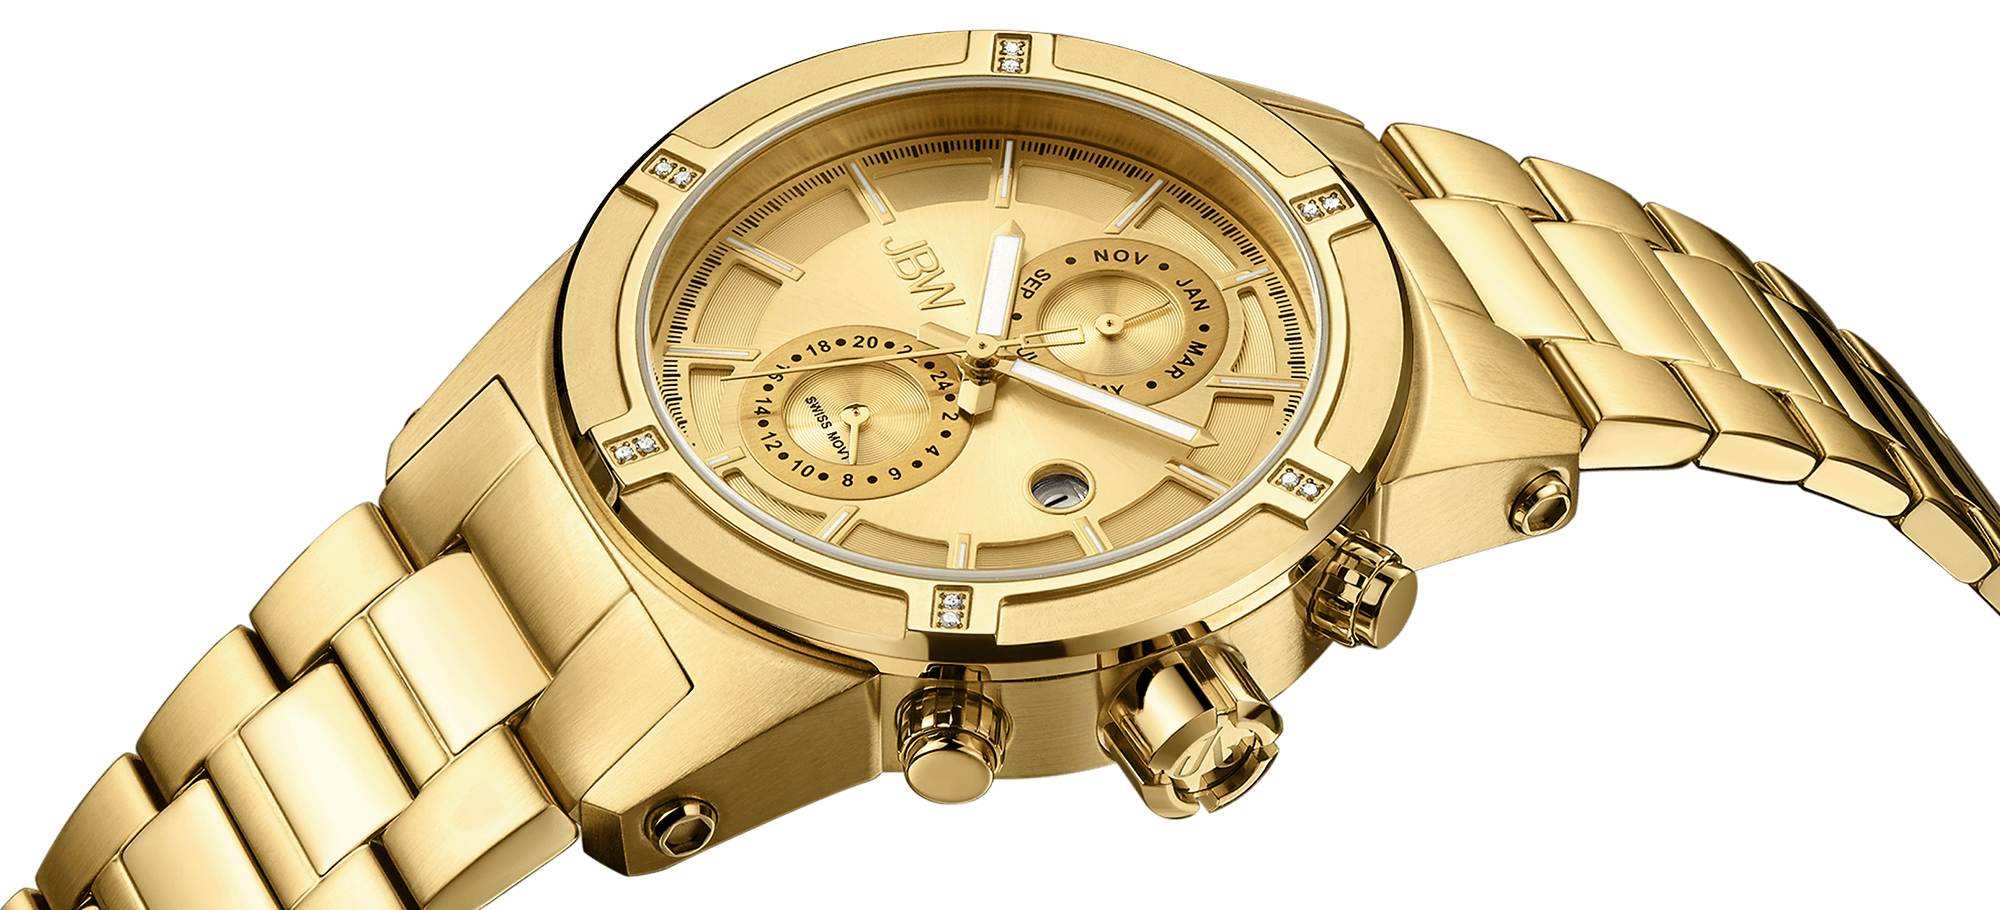 jbw-strider-j6263e-gold-gold-diamond-watch